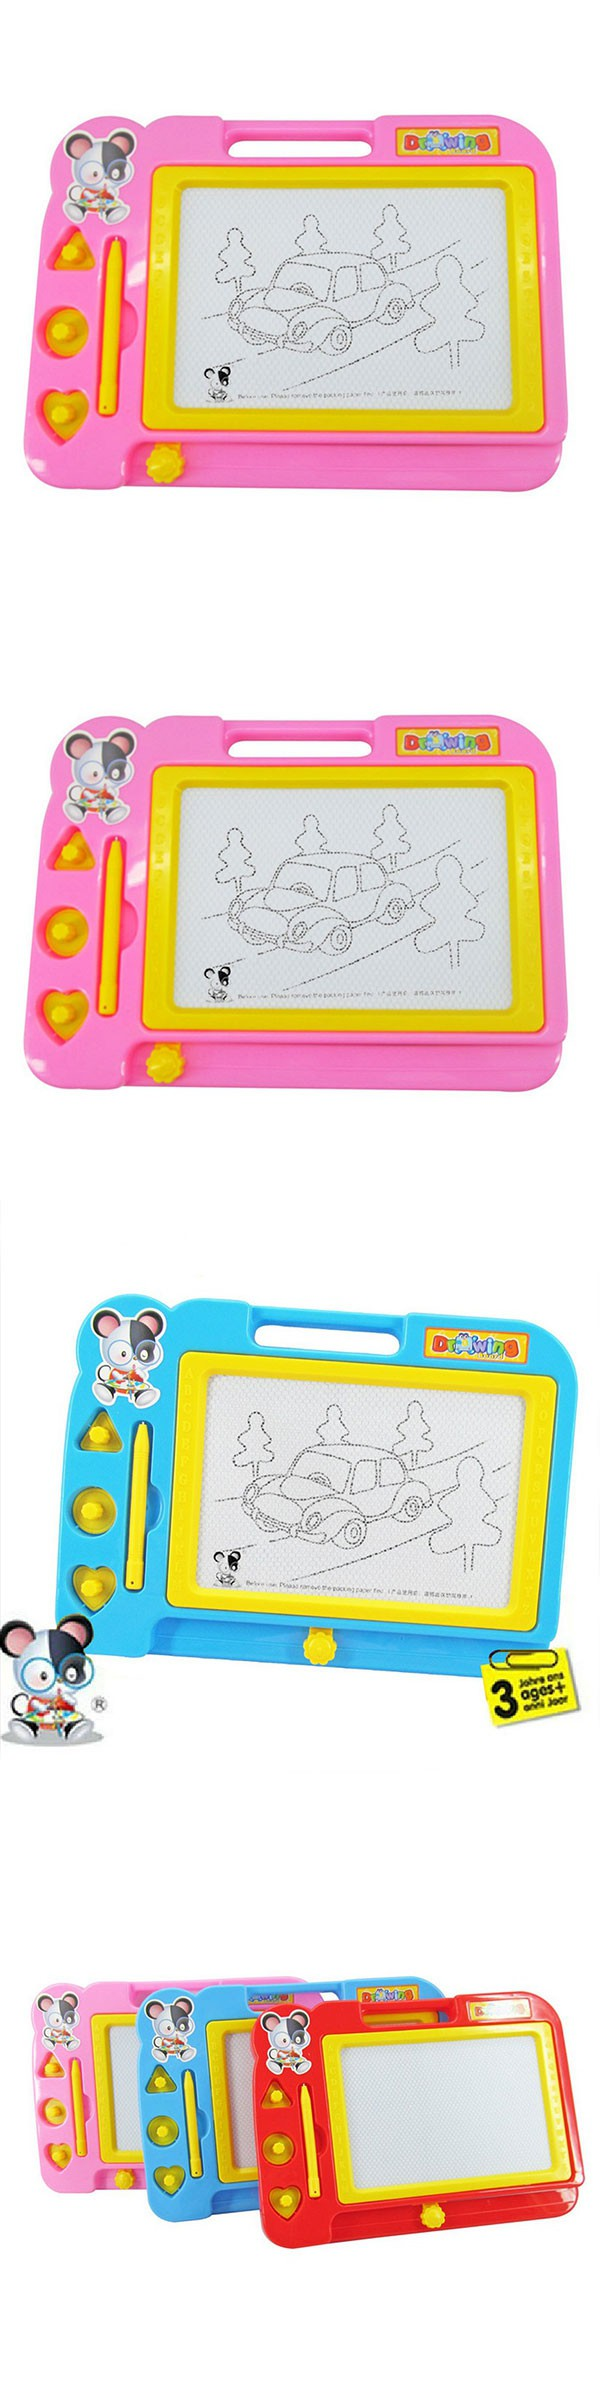 Magnetic craft board - Plastic Magnetic Drawing Board Sketch Sketcher Writing Painting Craft For Kids Children Multi Color